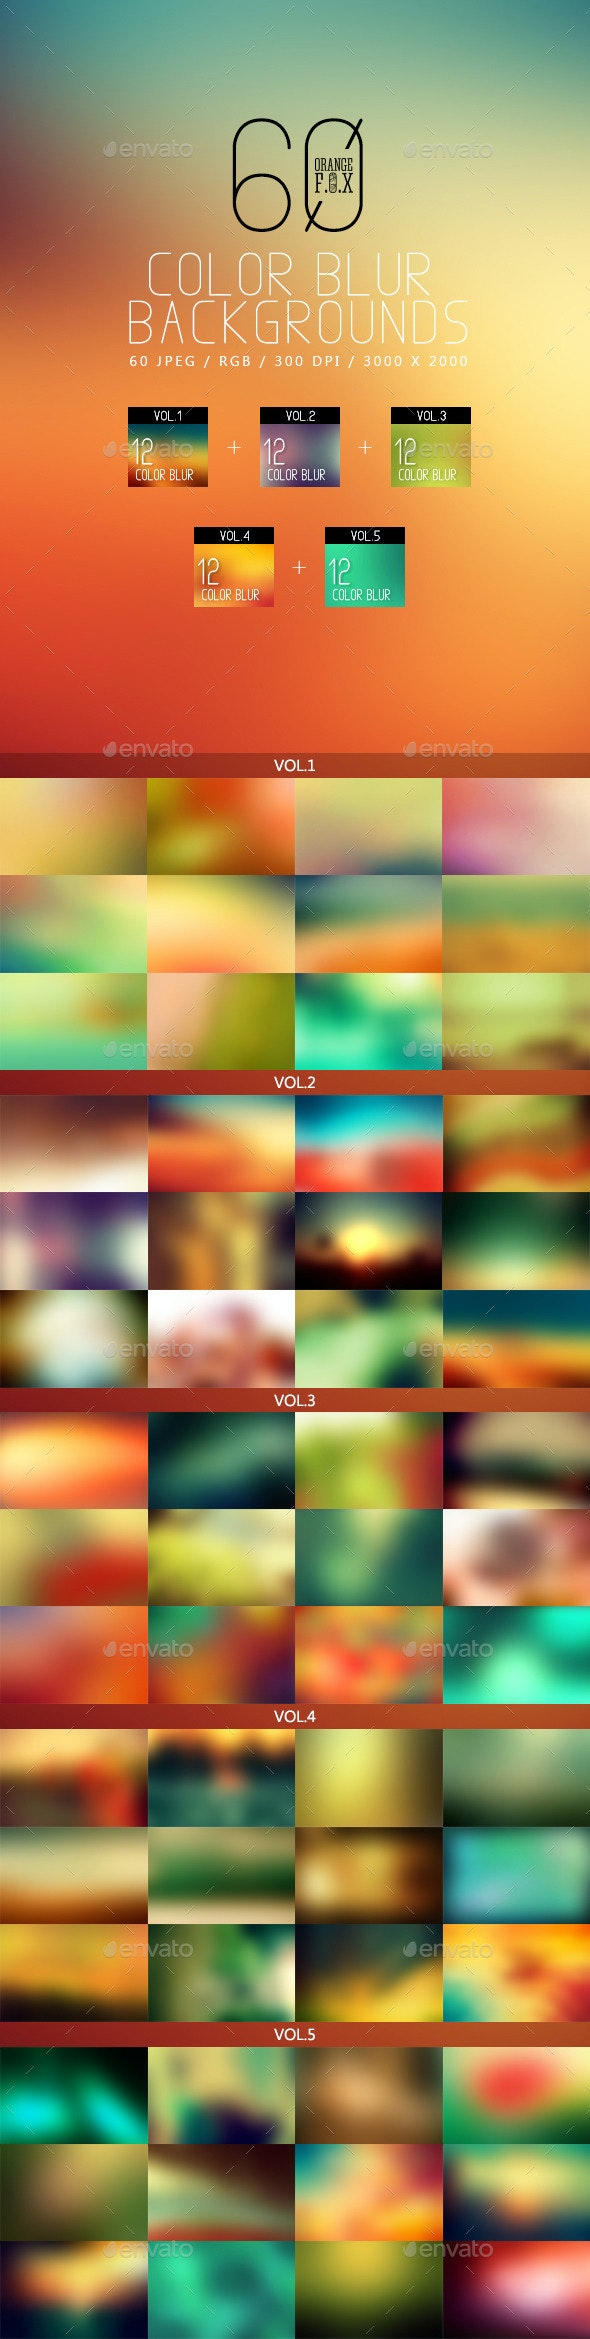 60 Color Blur Backgrounds Bundle - Abstract Backgrounds